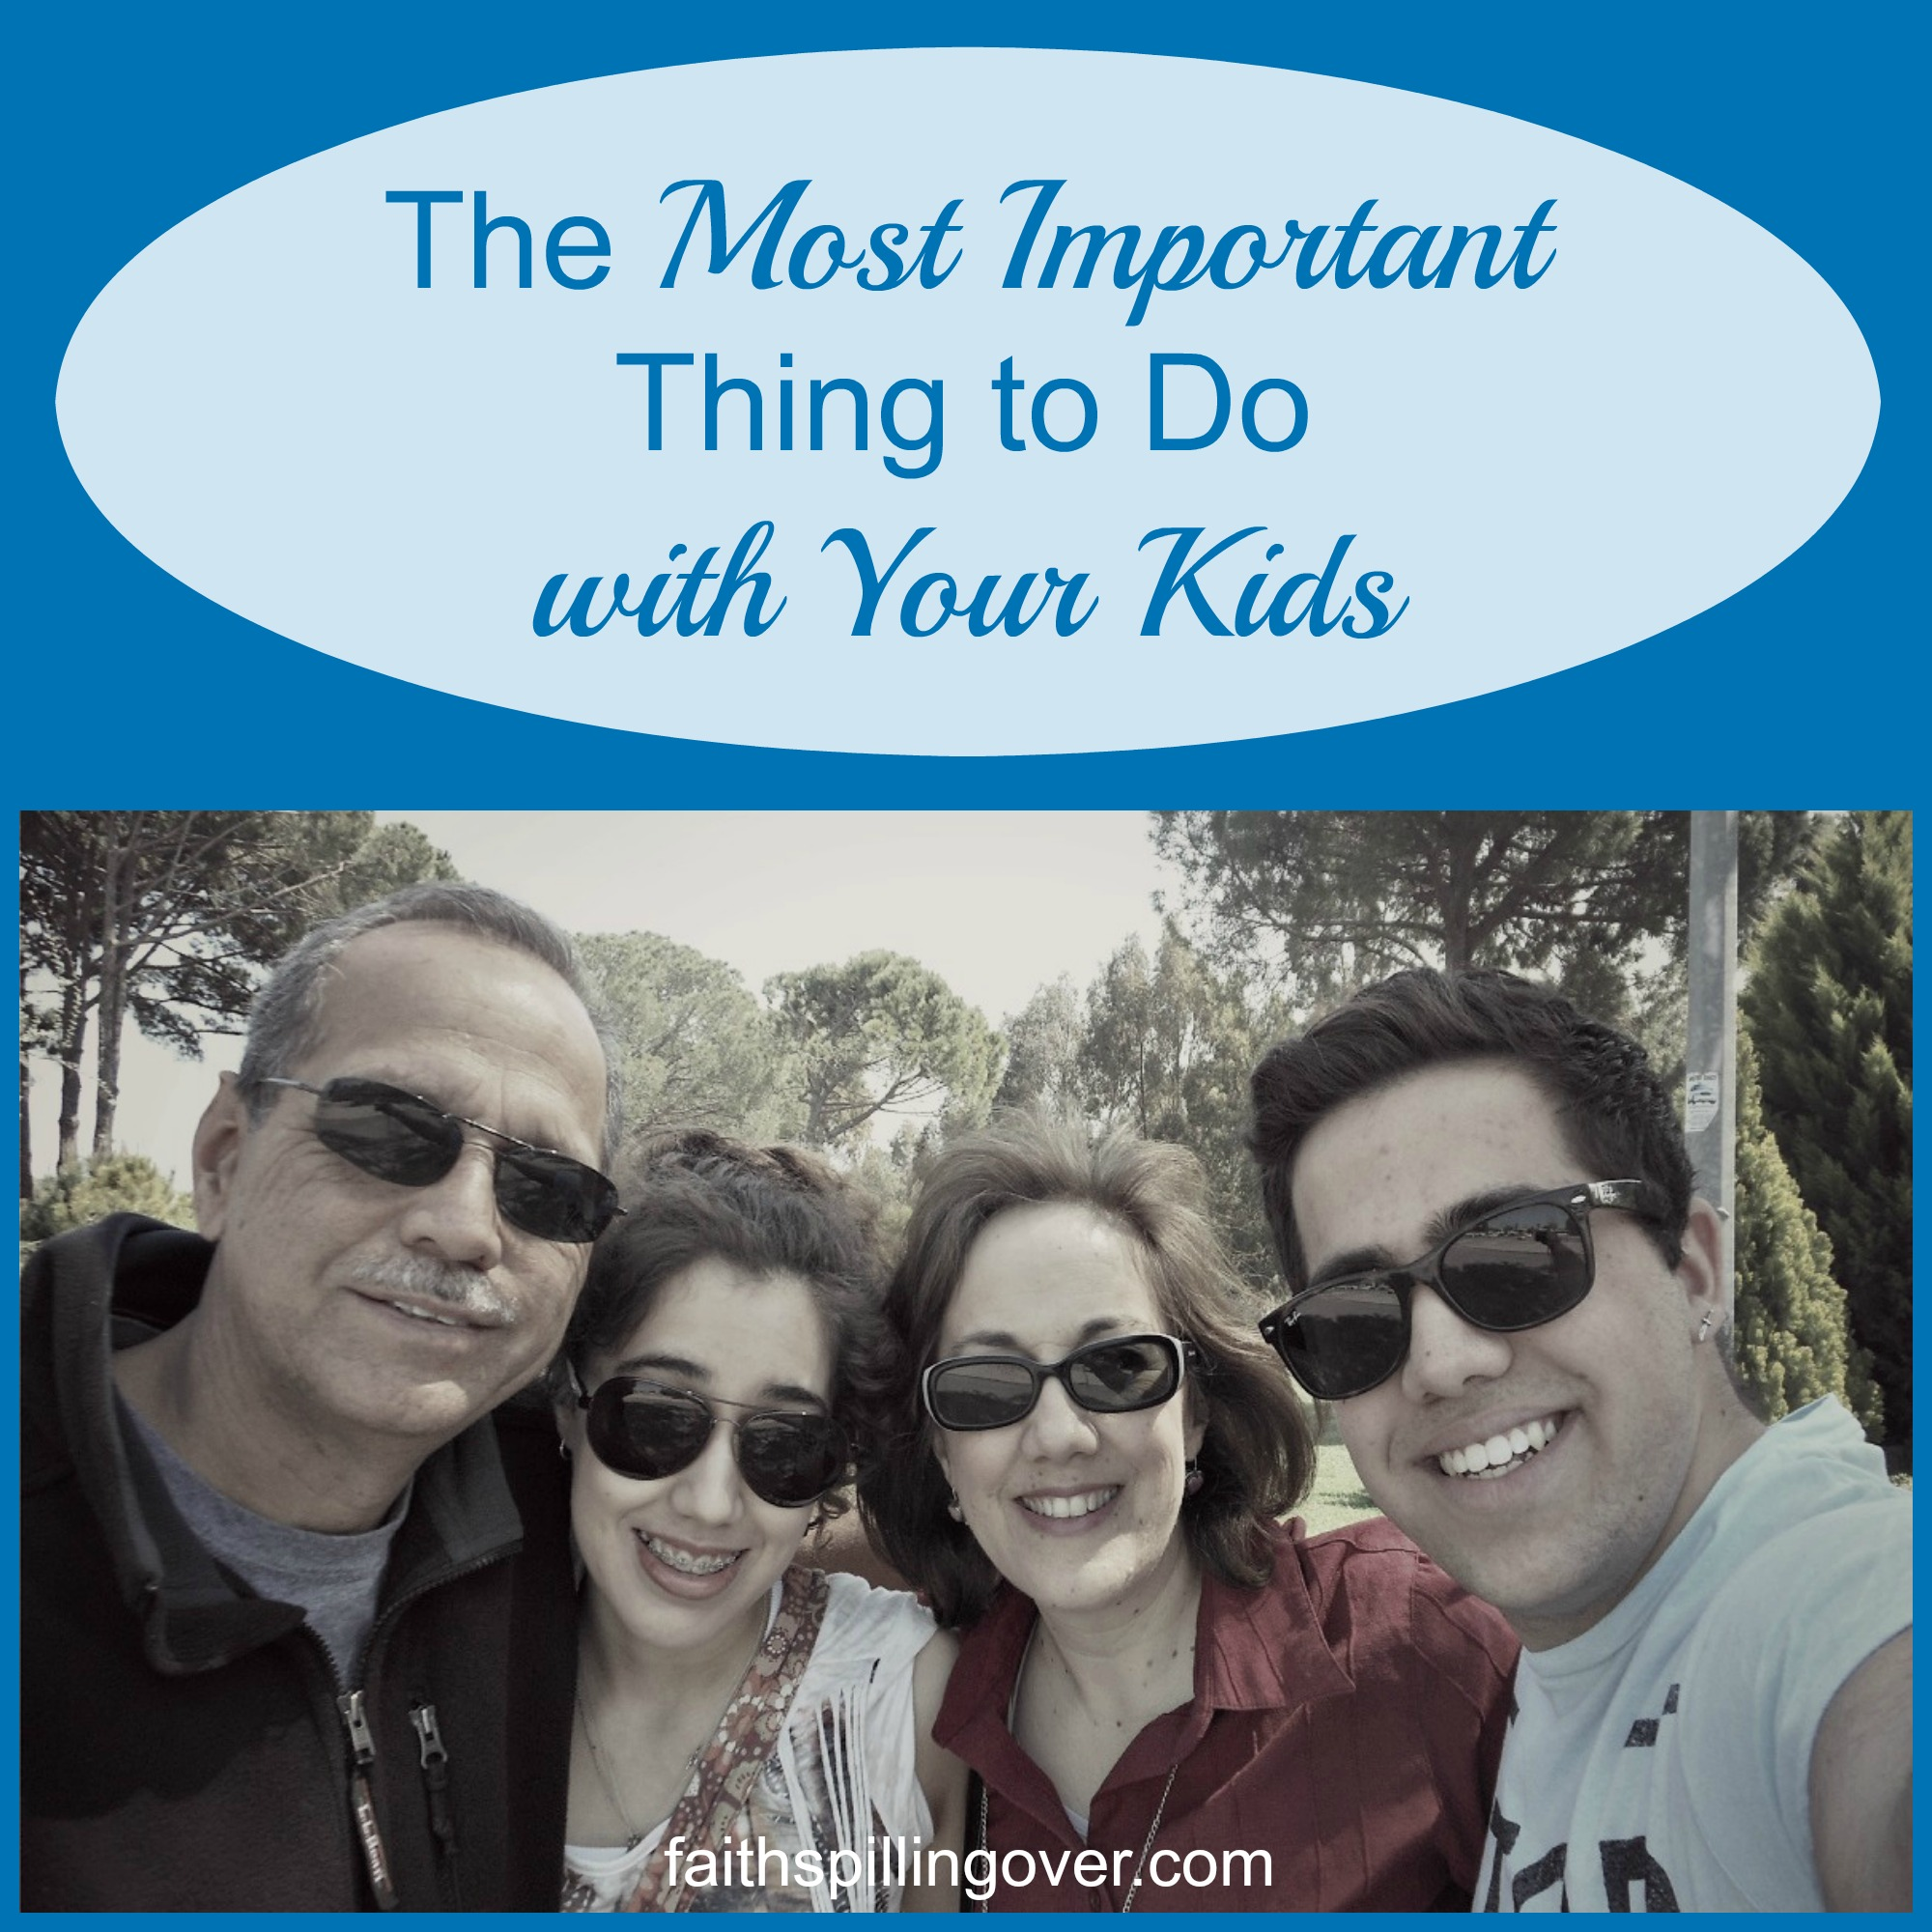 The Most Important Thing to Do with Your Kids